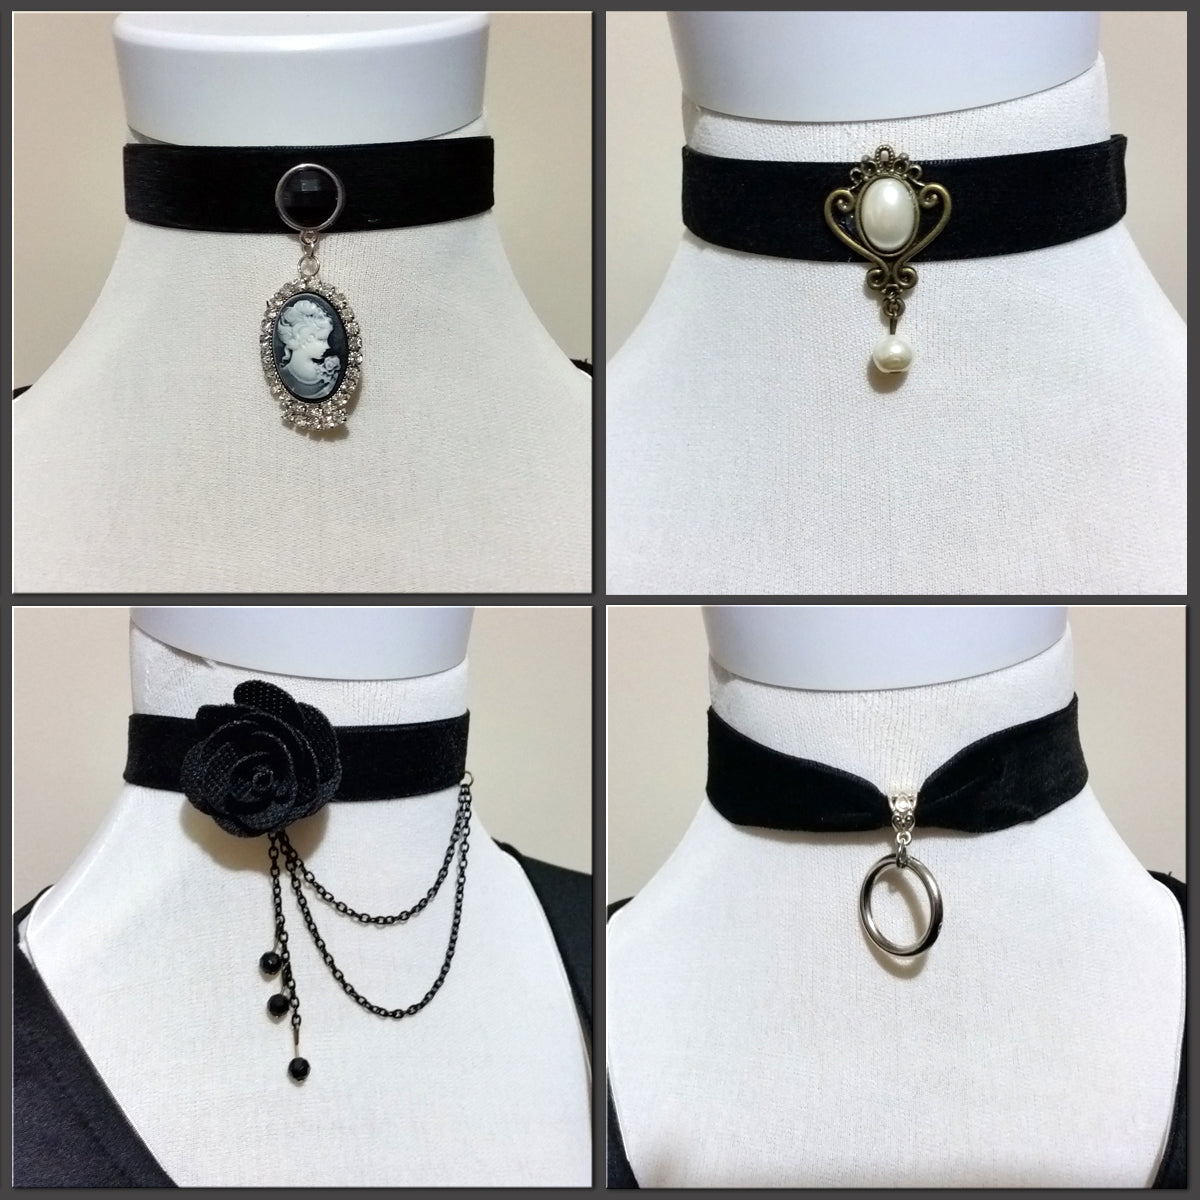 Assorted velvet chokers in three different designs.